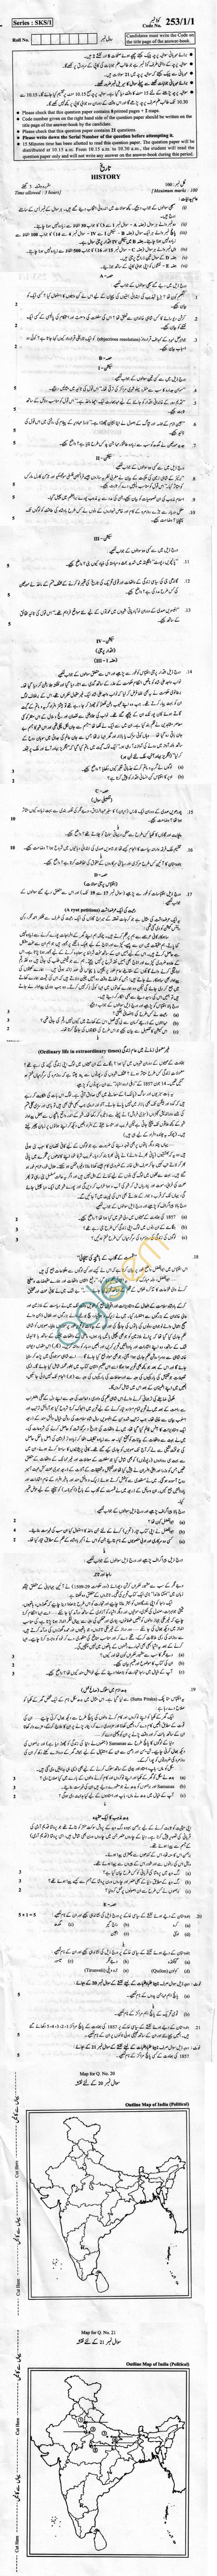 CBSE Board Exam 2013 Class XII Question Paper - History (Urdu Version)